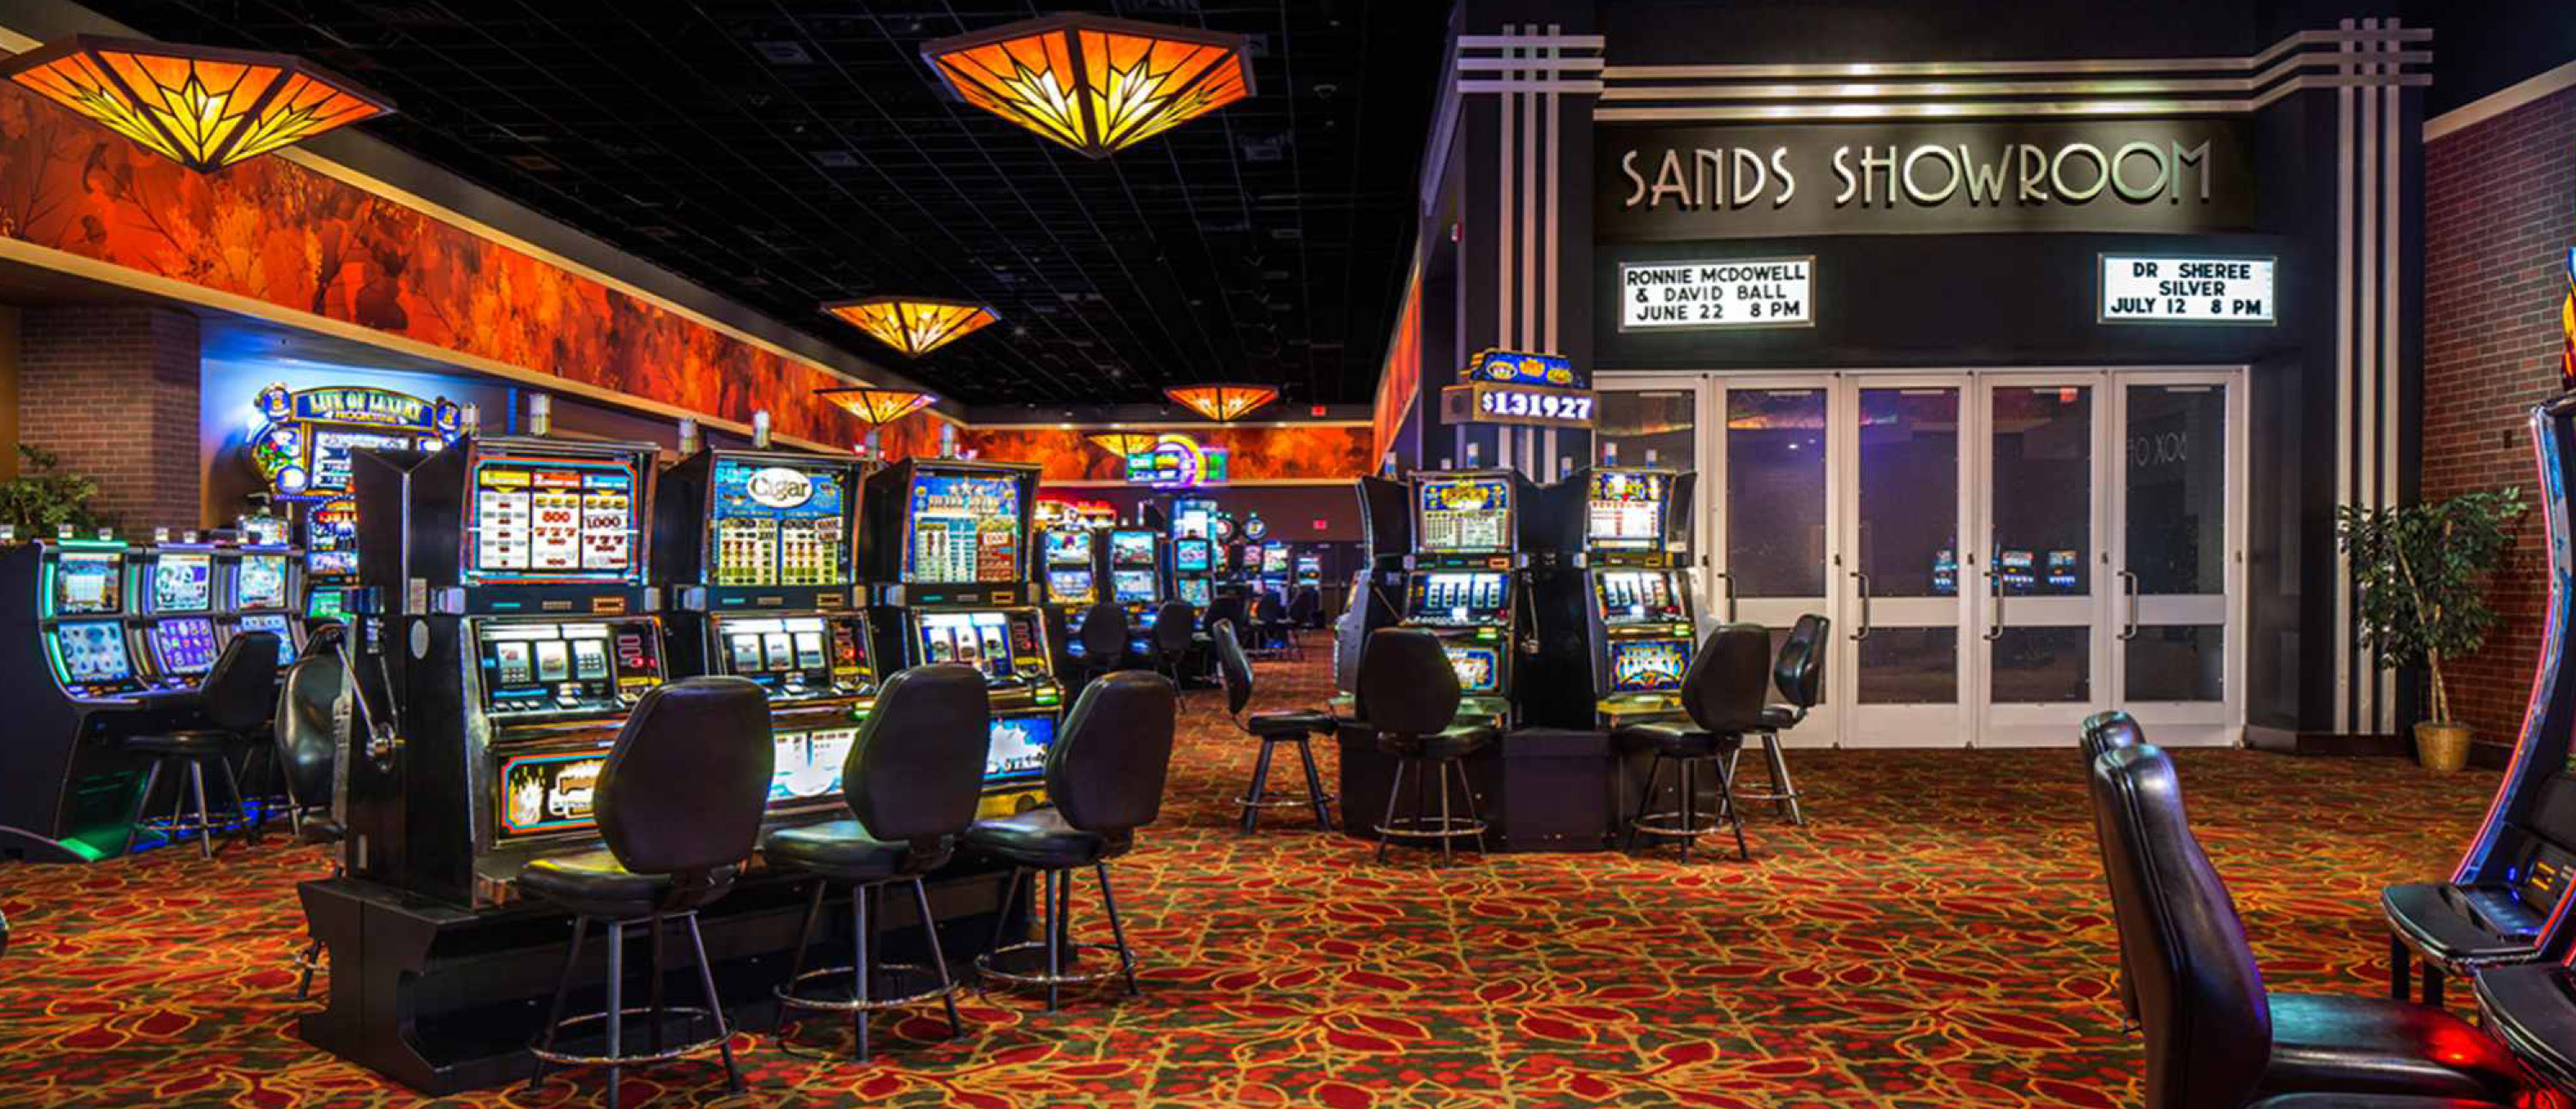 Leelanau sands casino events